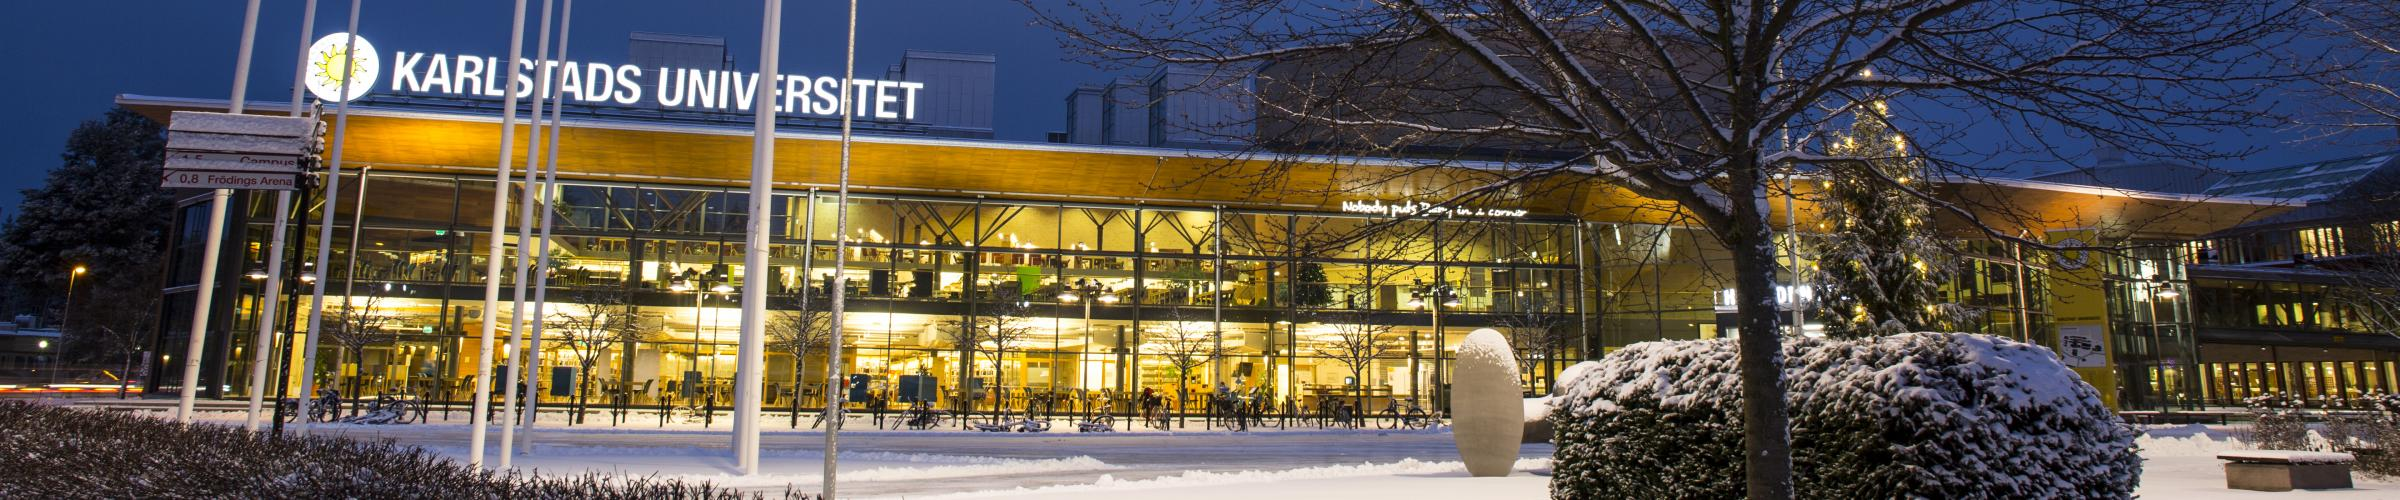 Biblioteket Karlstads universitet